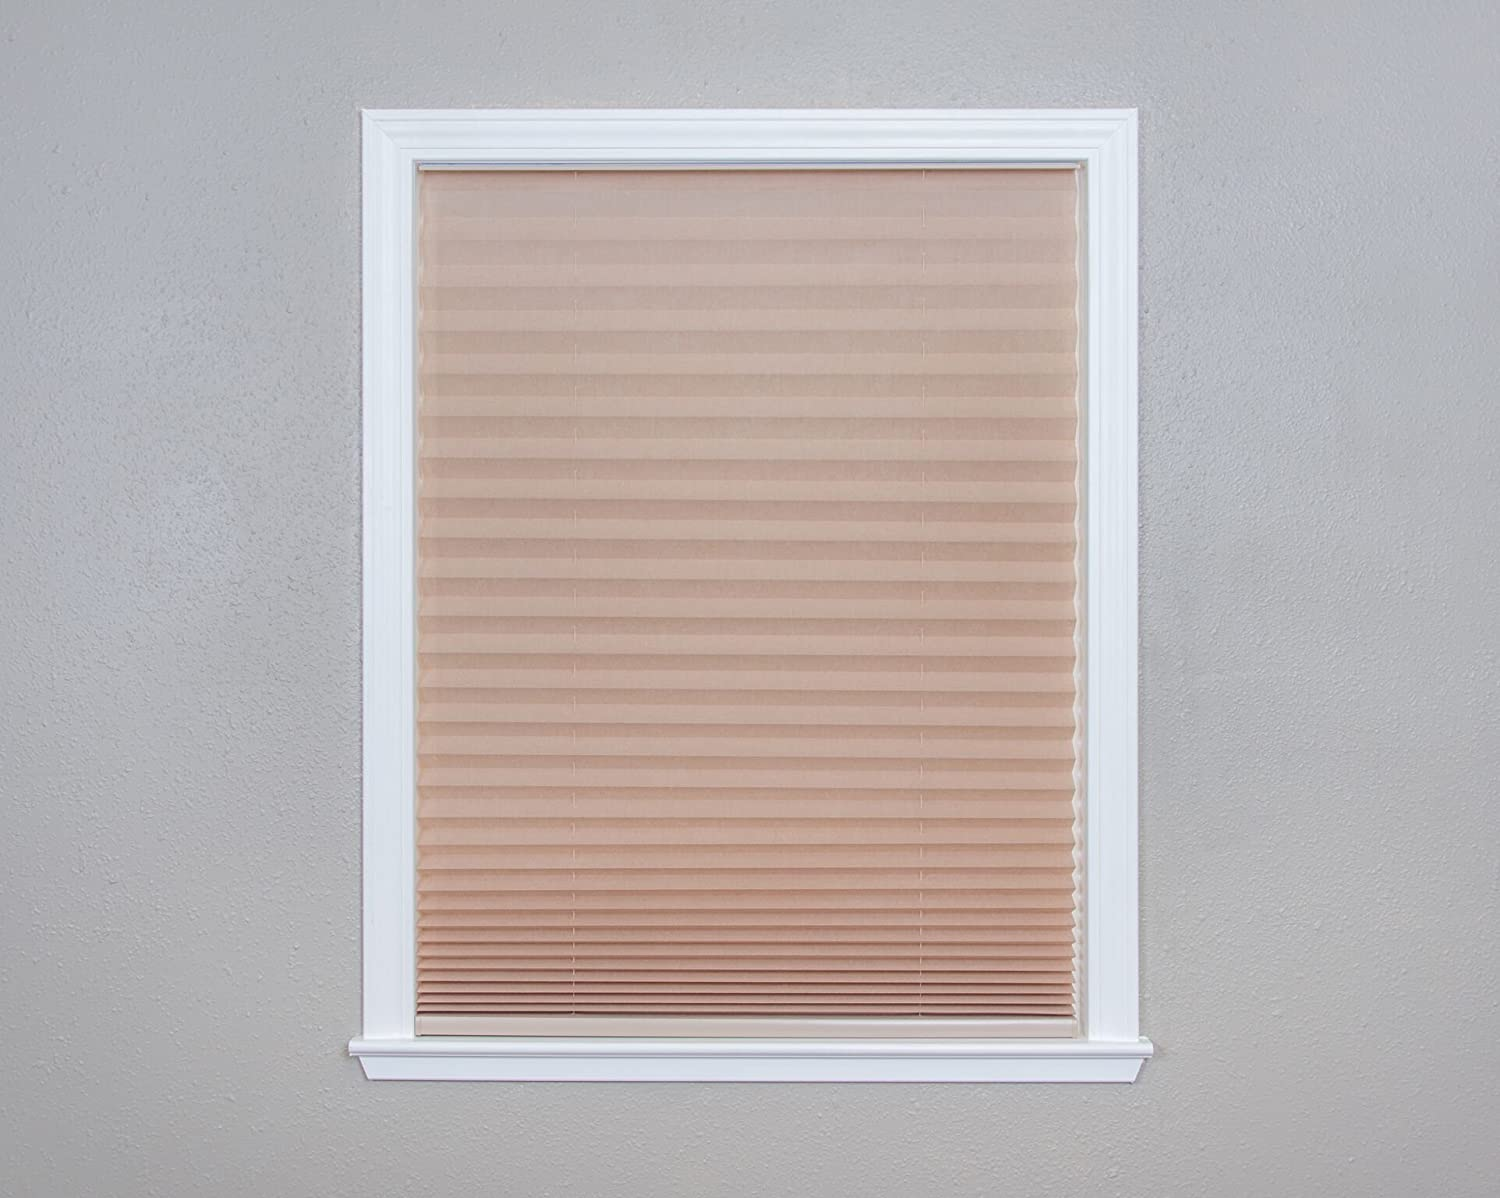 Easy Lift, 36-inch by 64-inch, Trim-at-Home (fits windows 21-inches to 36-inches wide) Cordless Pleated Shade, Light Filtering, Natural Shades Unlimited Inc. dba Redi Shade 750227506563